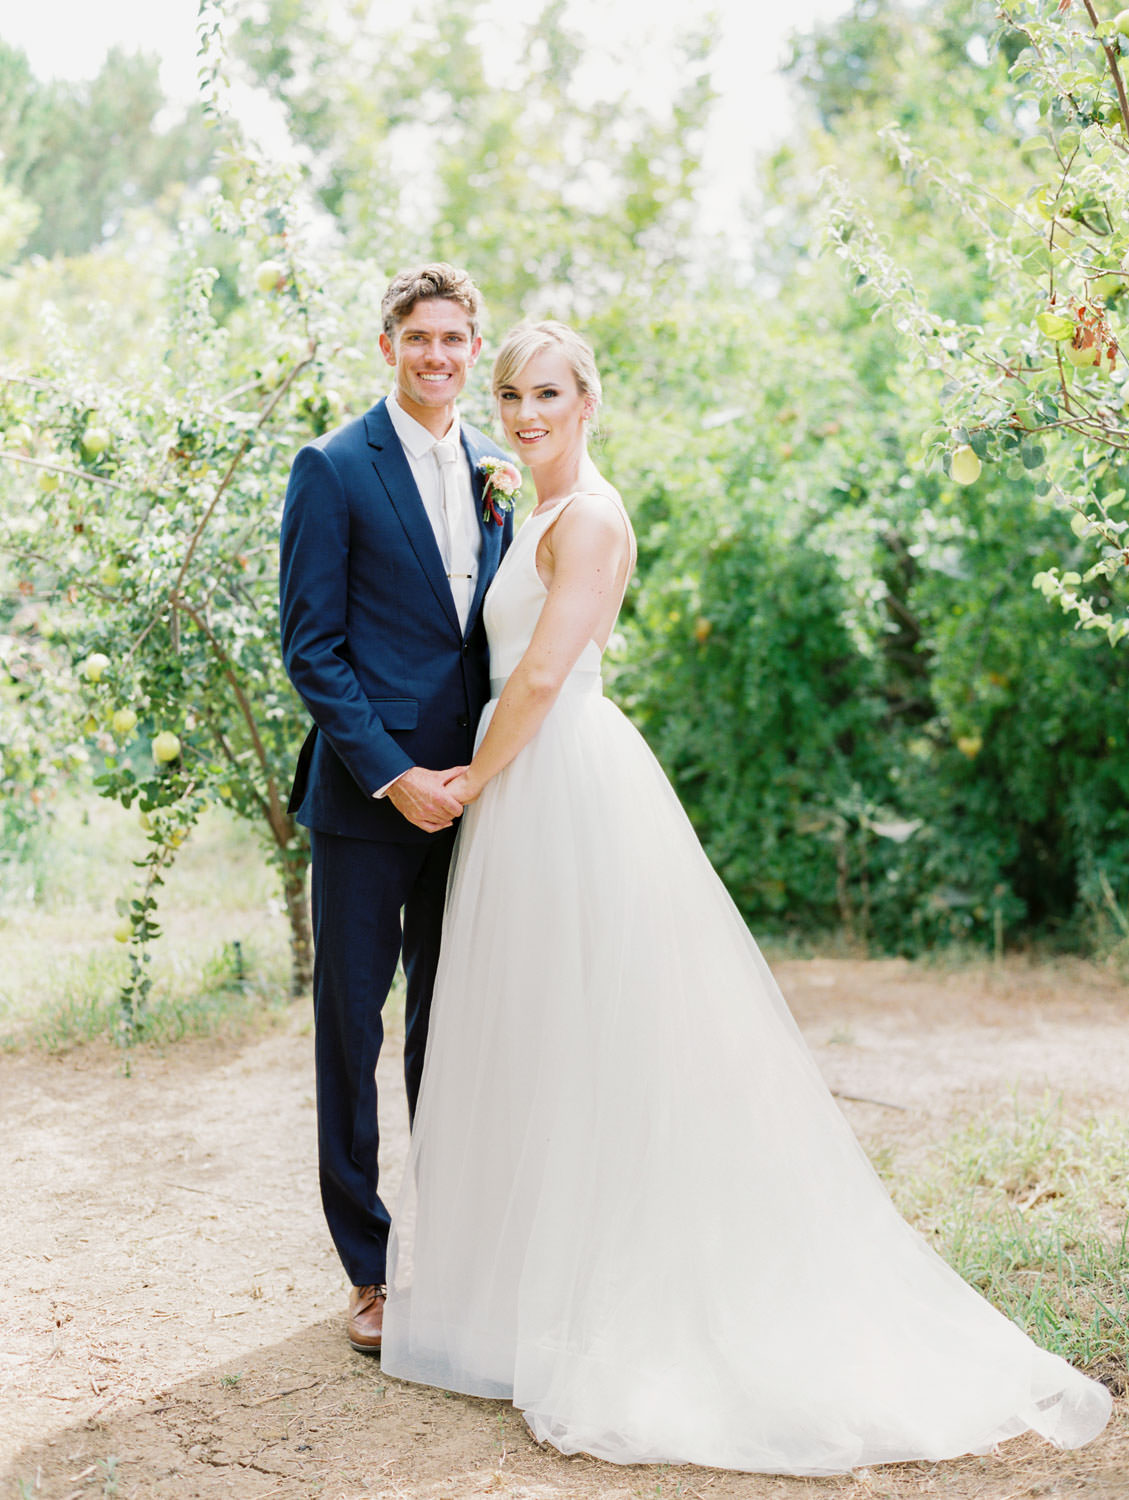 Bride in a classic Mikaella Bridal gown smiling at the camera with the groom in a navy linen suit. Full Belly Farm on Martha Stewart Weddings by film photographer Cavin Elizabeth Photography